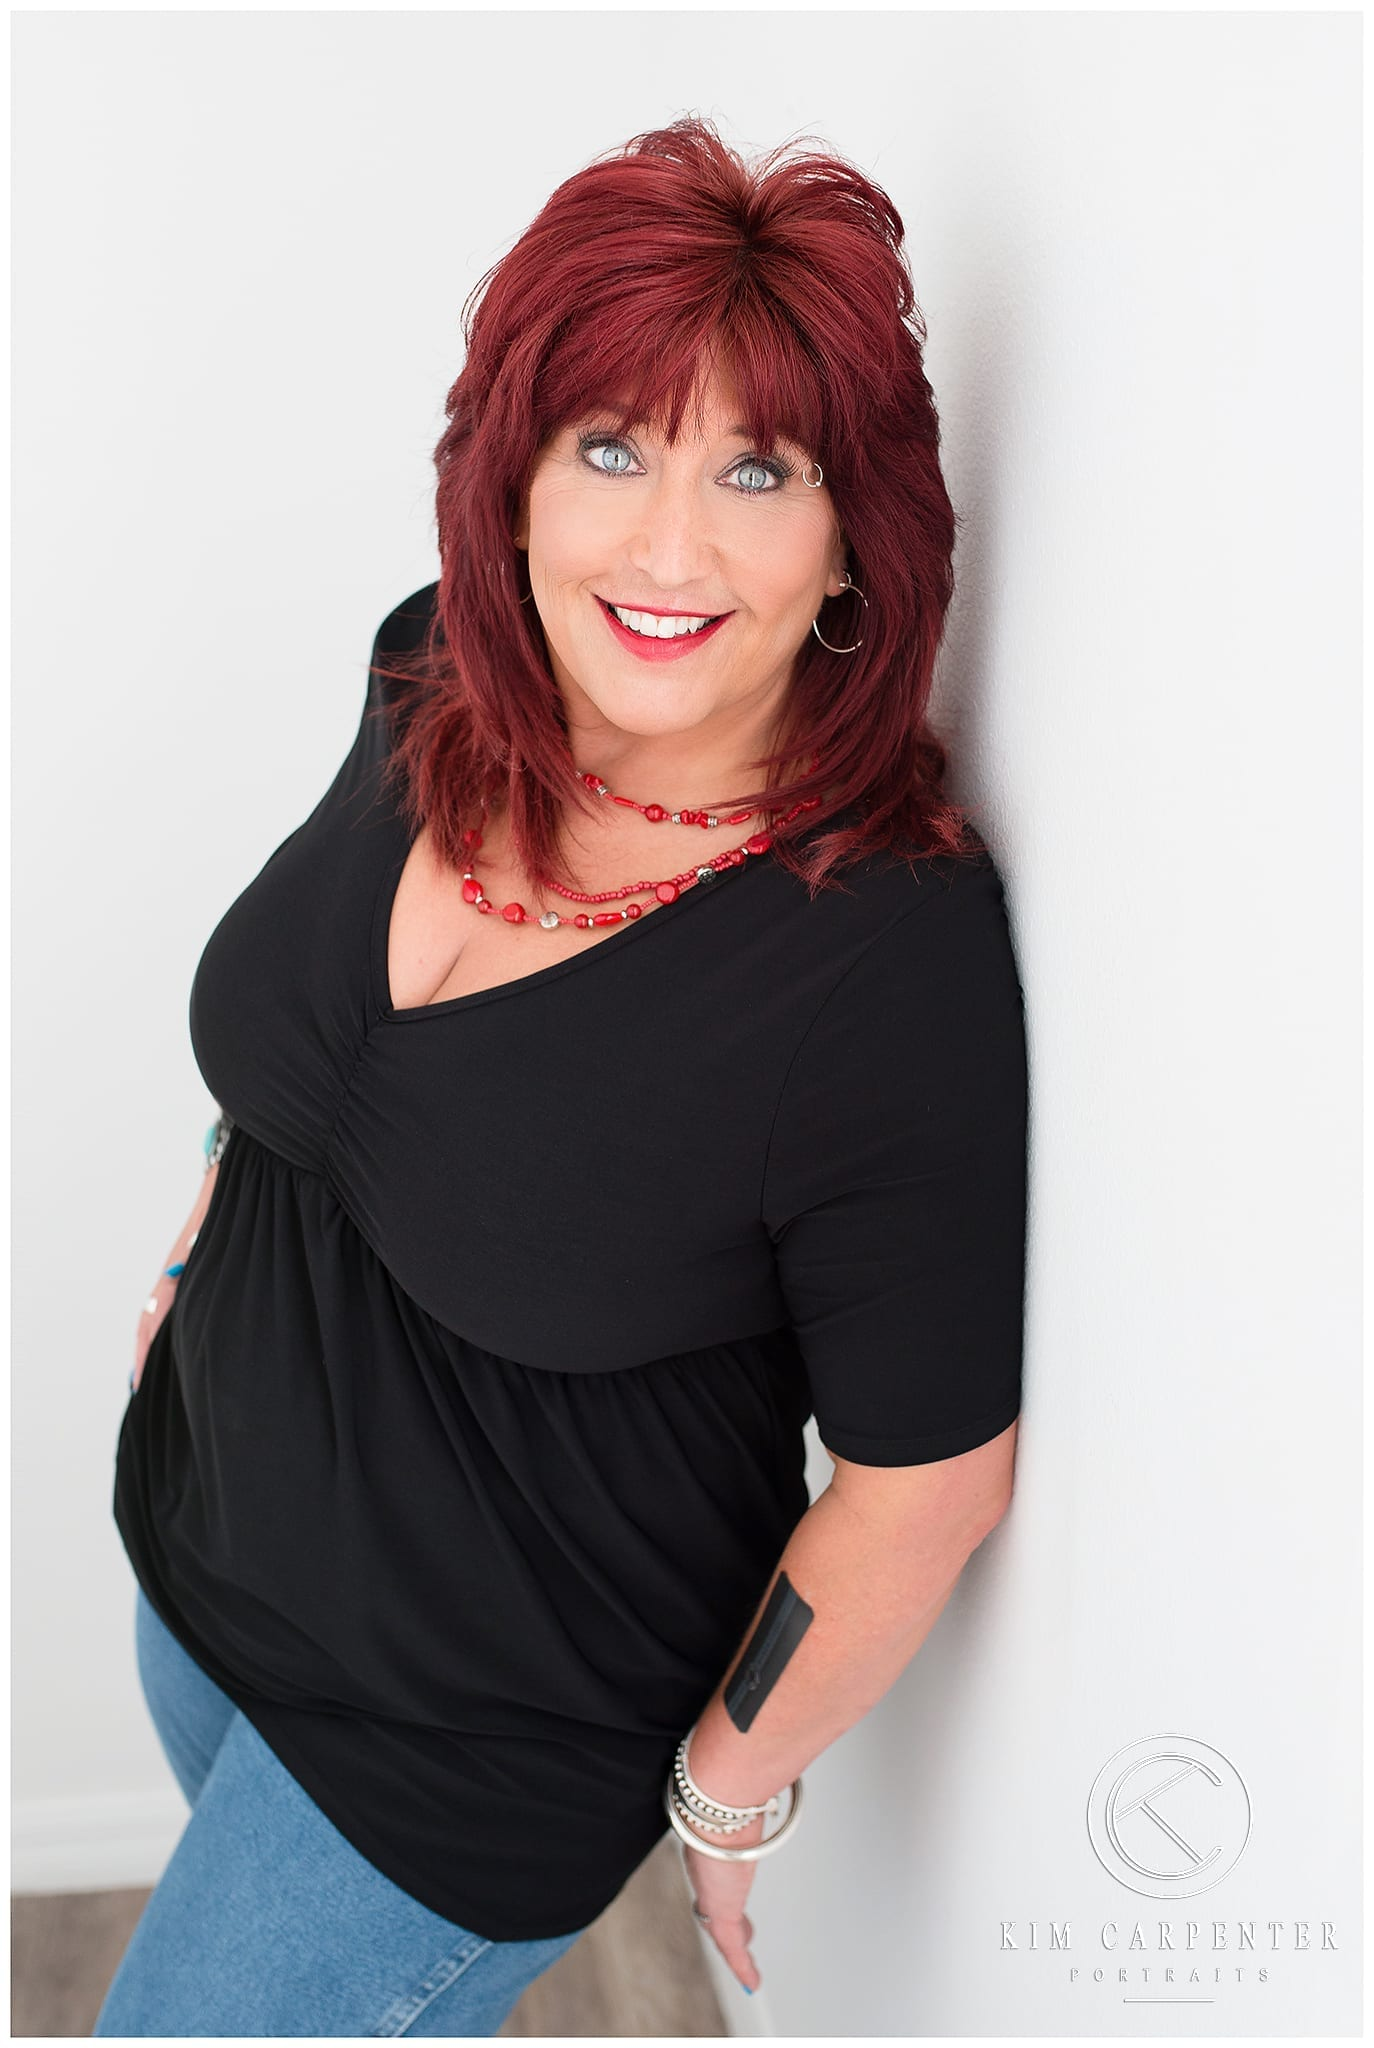 Woman leaning against a wall and facing the photographer. Lakeland Photographer, professional headshots